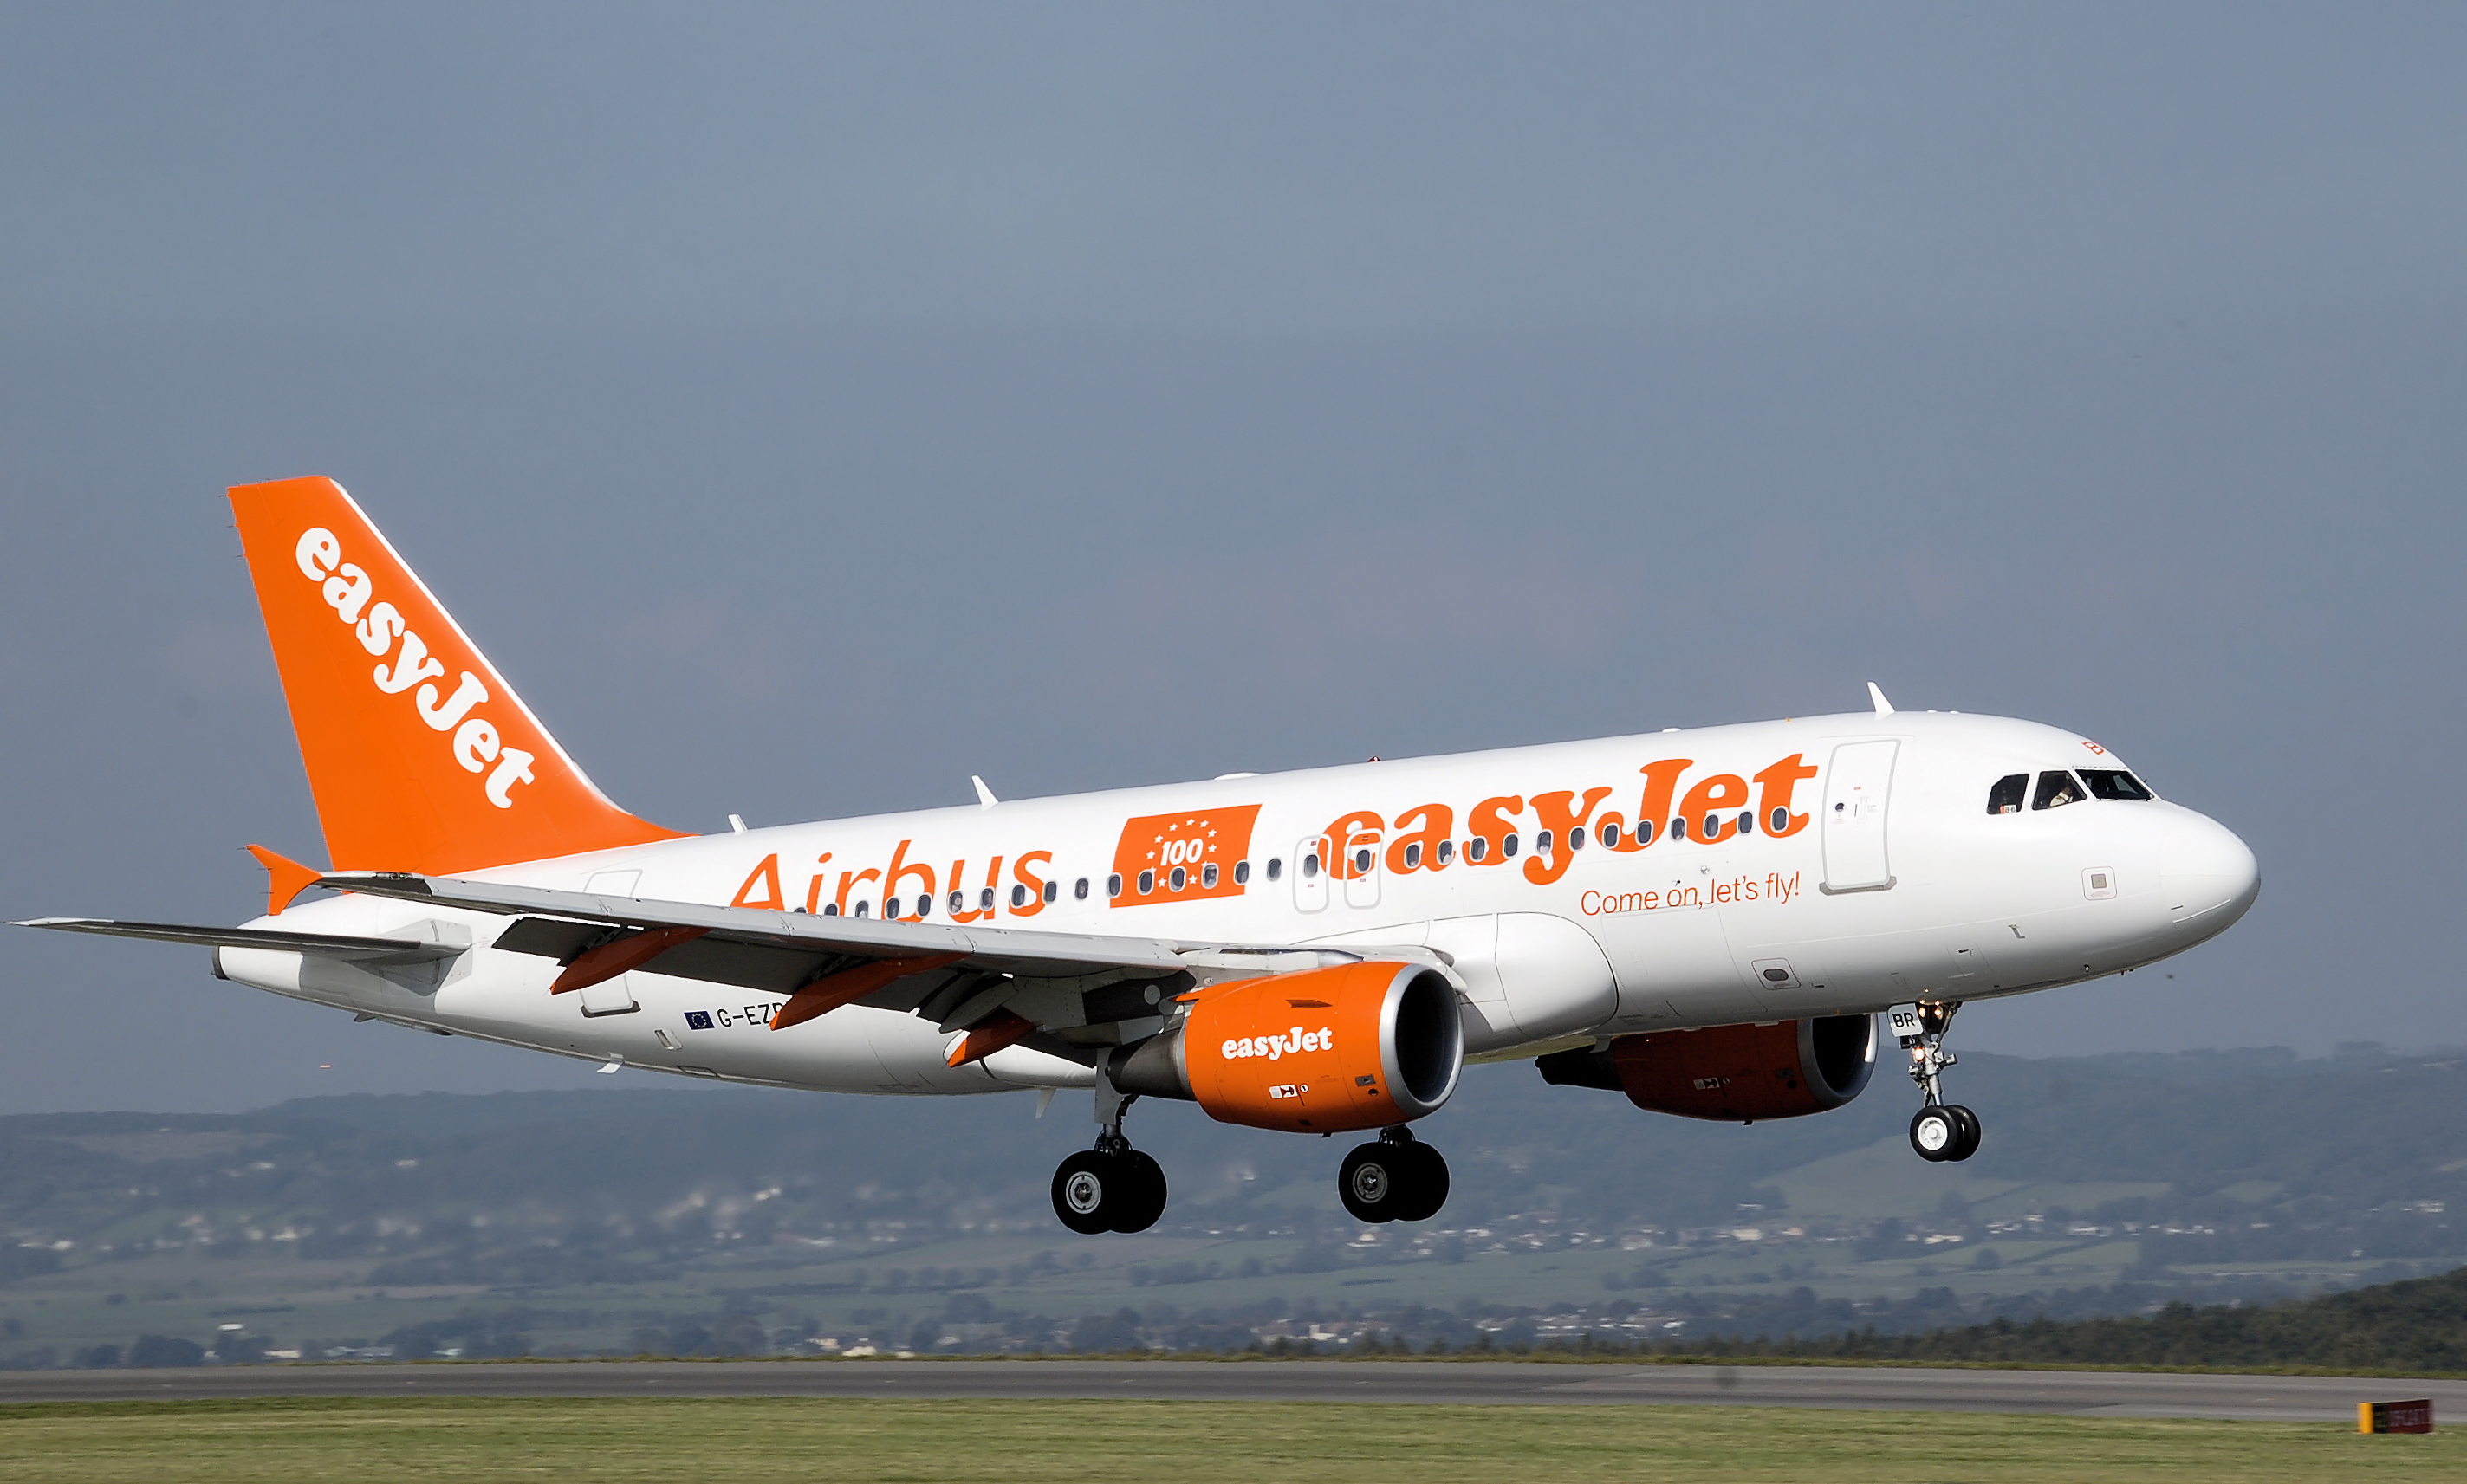 easyjet - photo #42